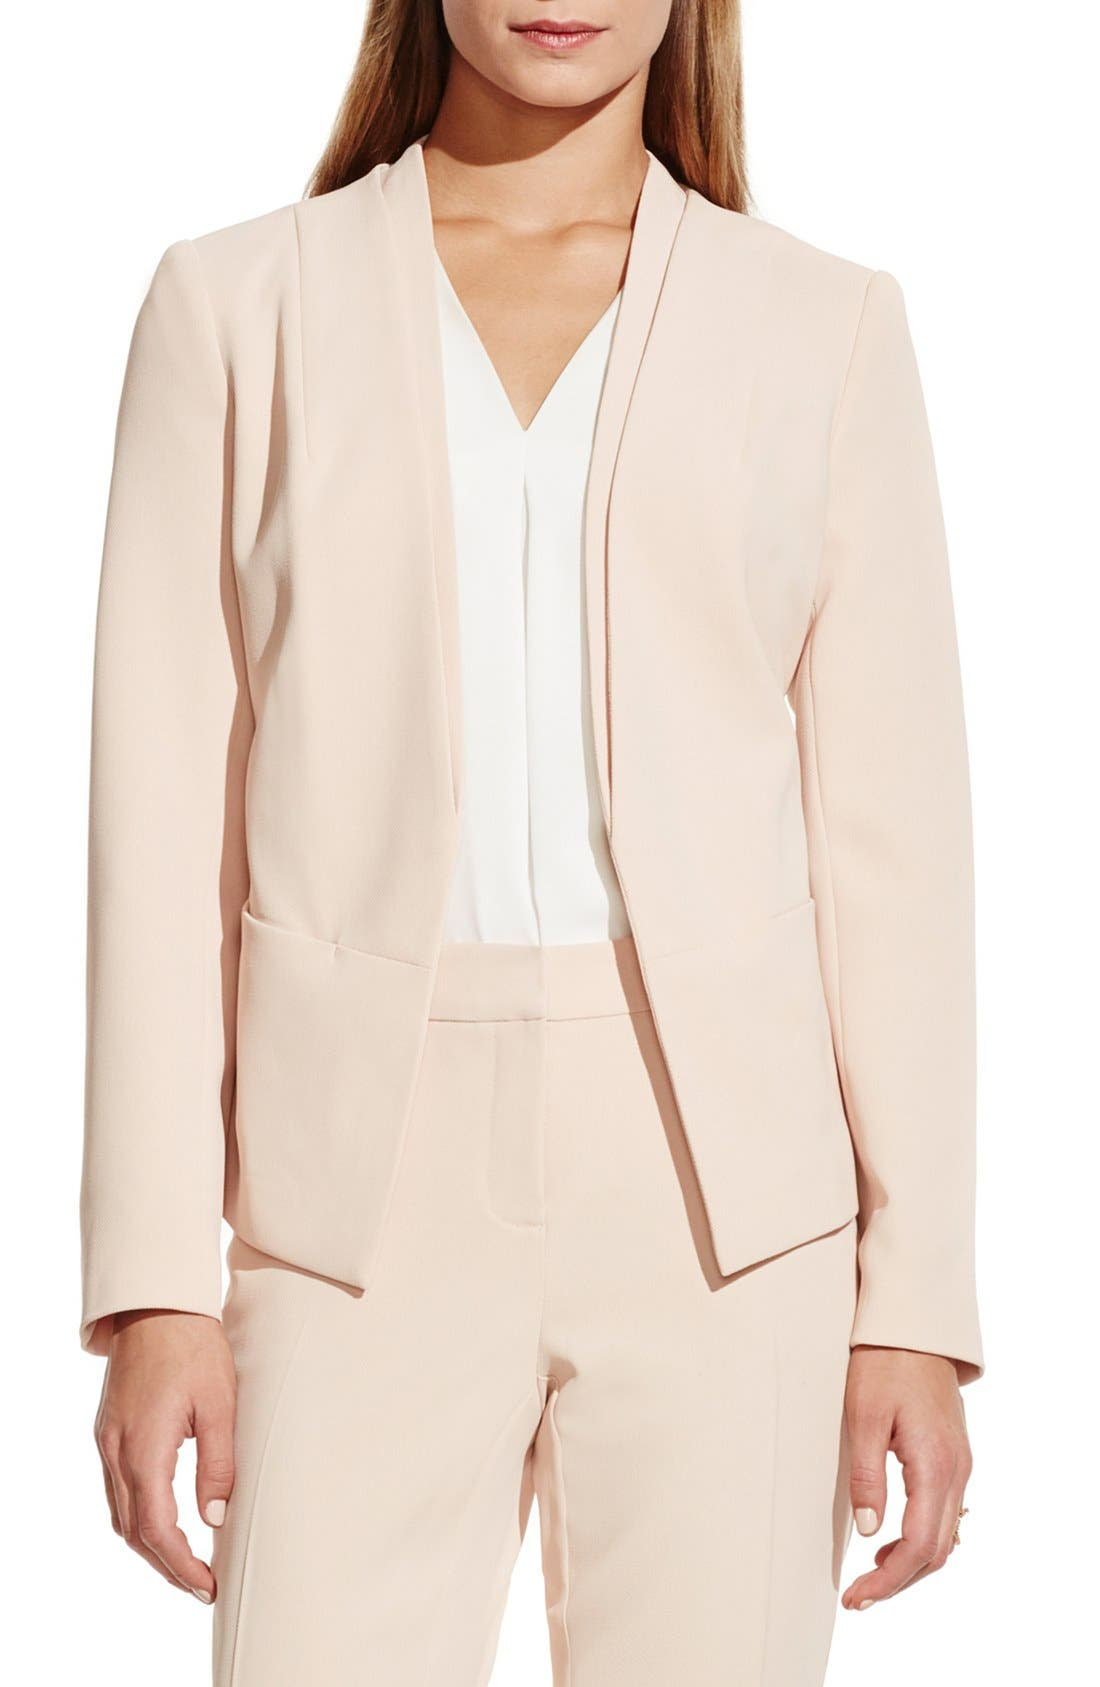 Alternate Image 1 Selected - Vince Camuto Collarless Open Front Blazer